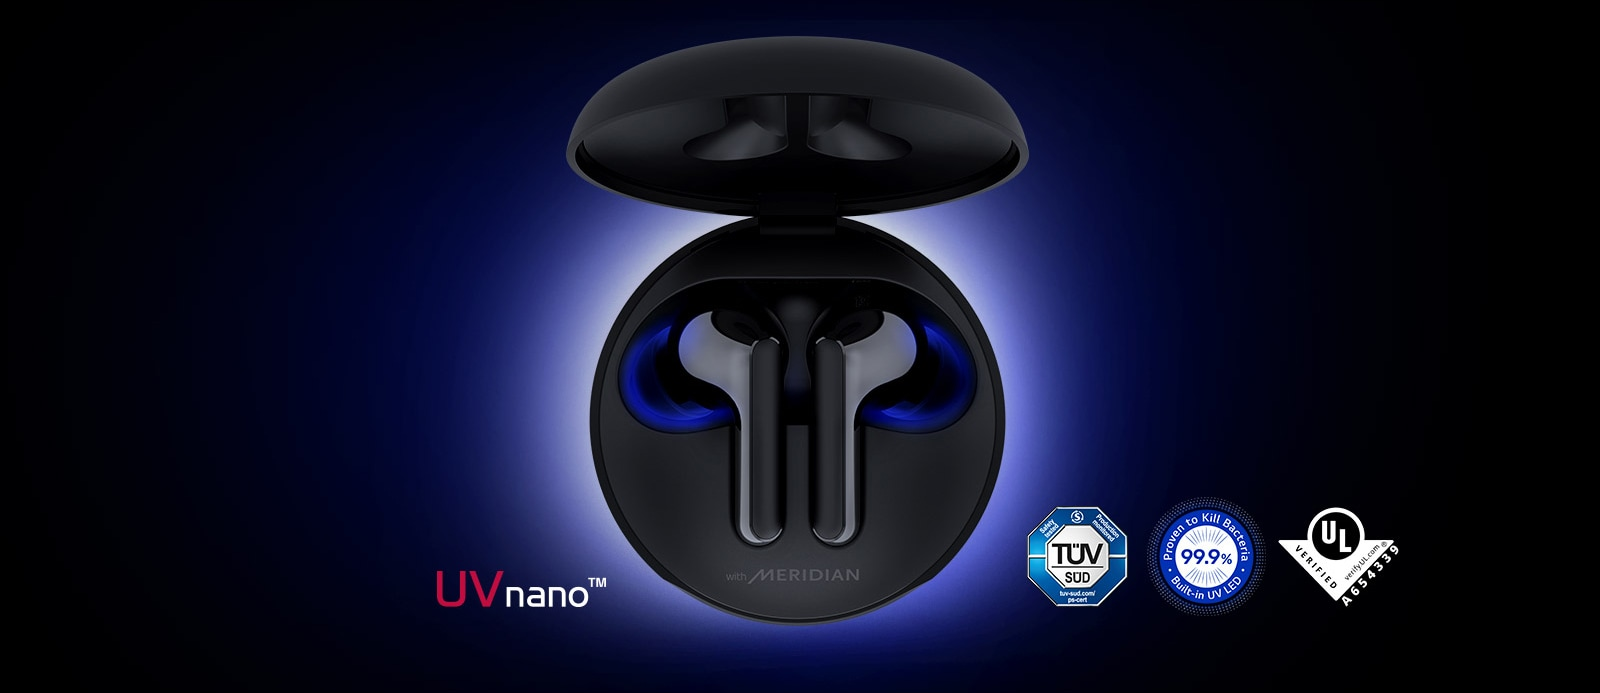 An image of the cradle opened up with earbuds sitting inside it and blue lighting shining to highlight the UVnano feature